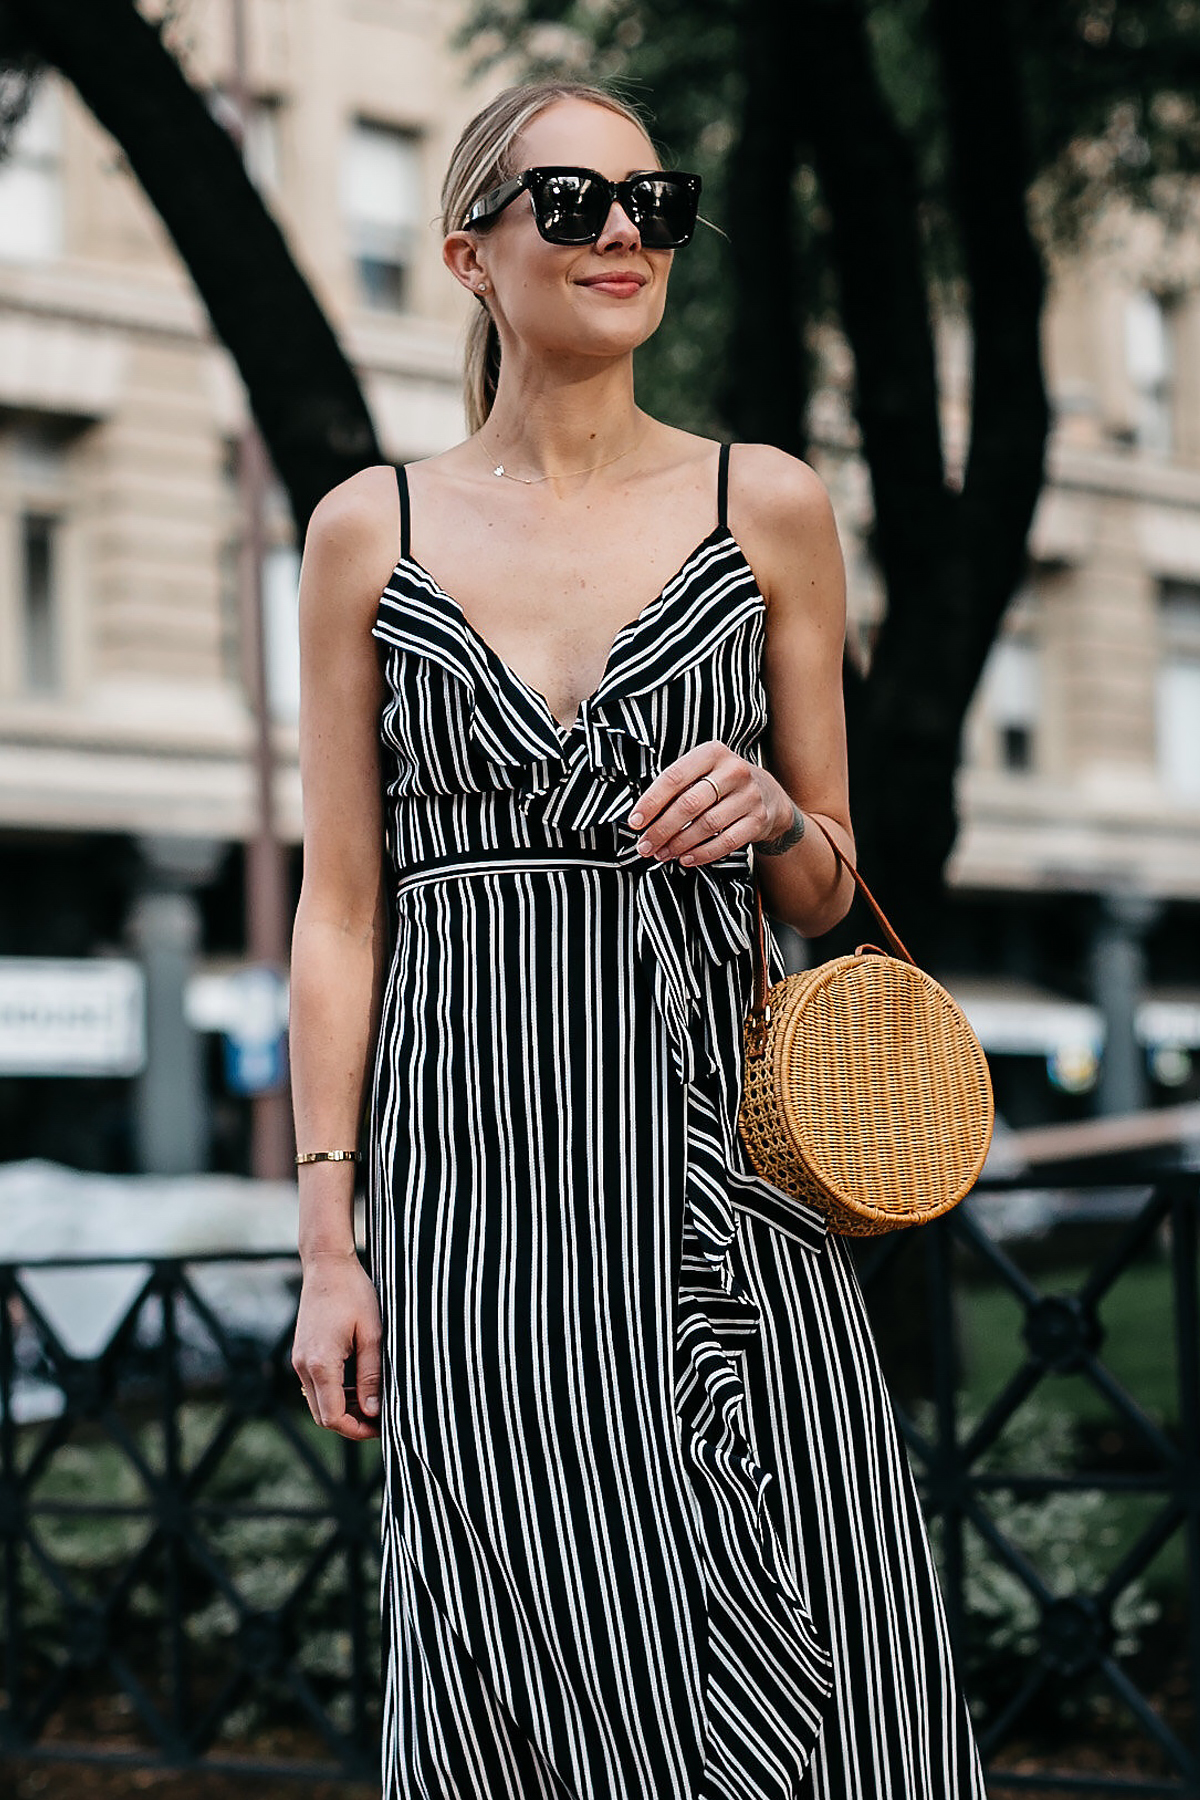 Blonde Woman Wearing AQUA Black White Stripe Maxi Dress Circle Straw Basket Handbag Fashion Jackson Dallas Blogger Fashion Blogger Street Style